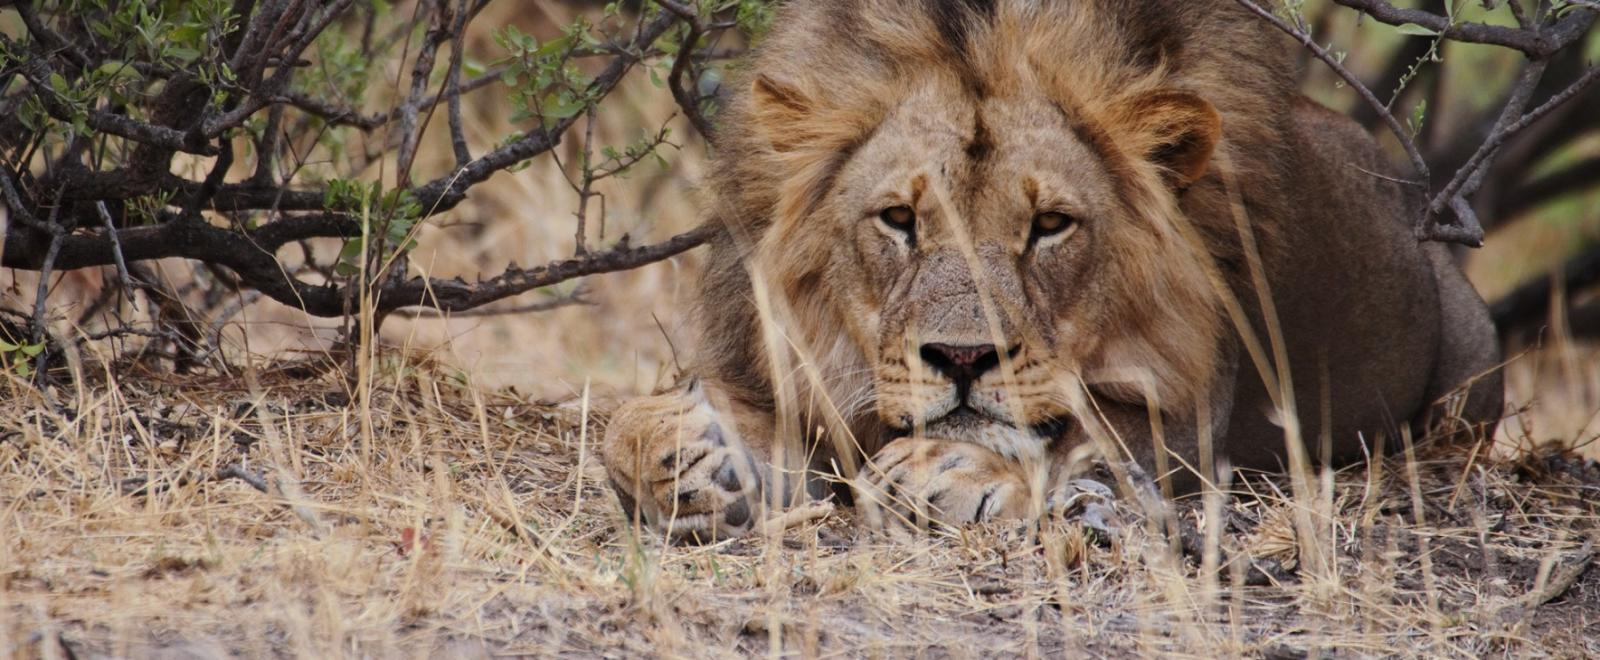 On a wildlife conservation project in Africa, volunteers in Botswana spot big cats resting during a monitoring session.